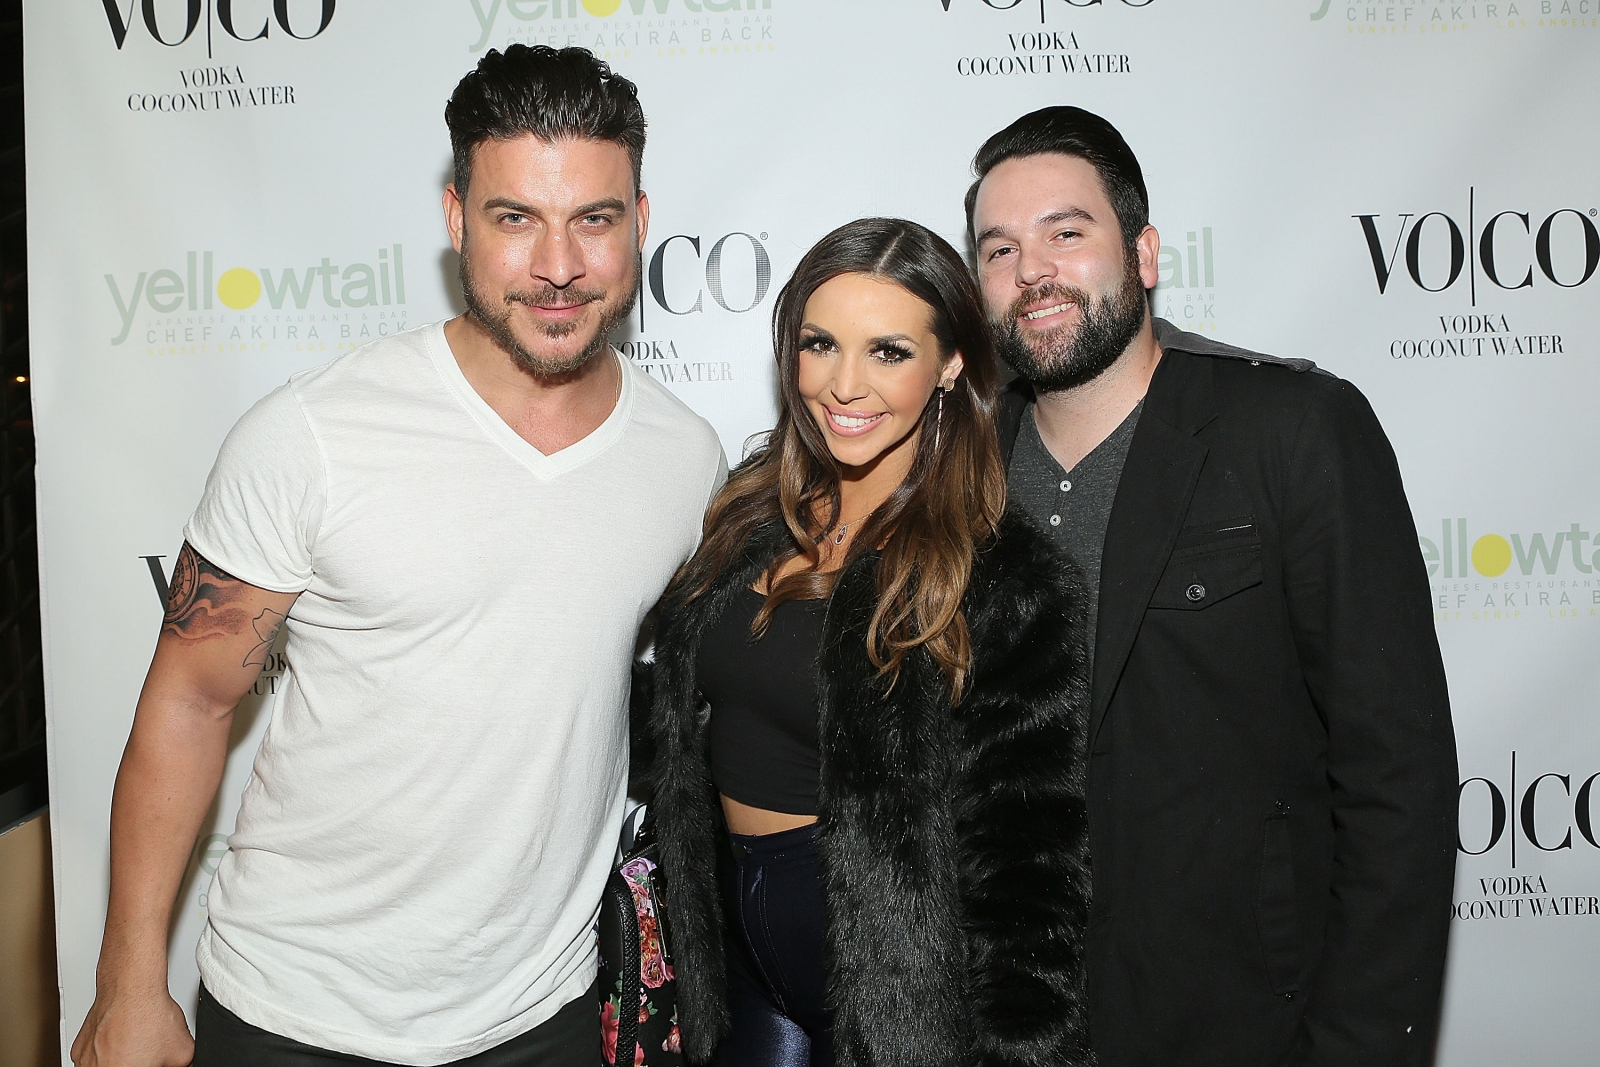 Vanderpump Rules stars Mike Shay and Scheana Shay